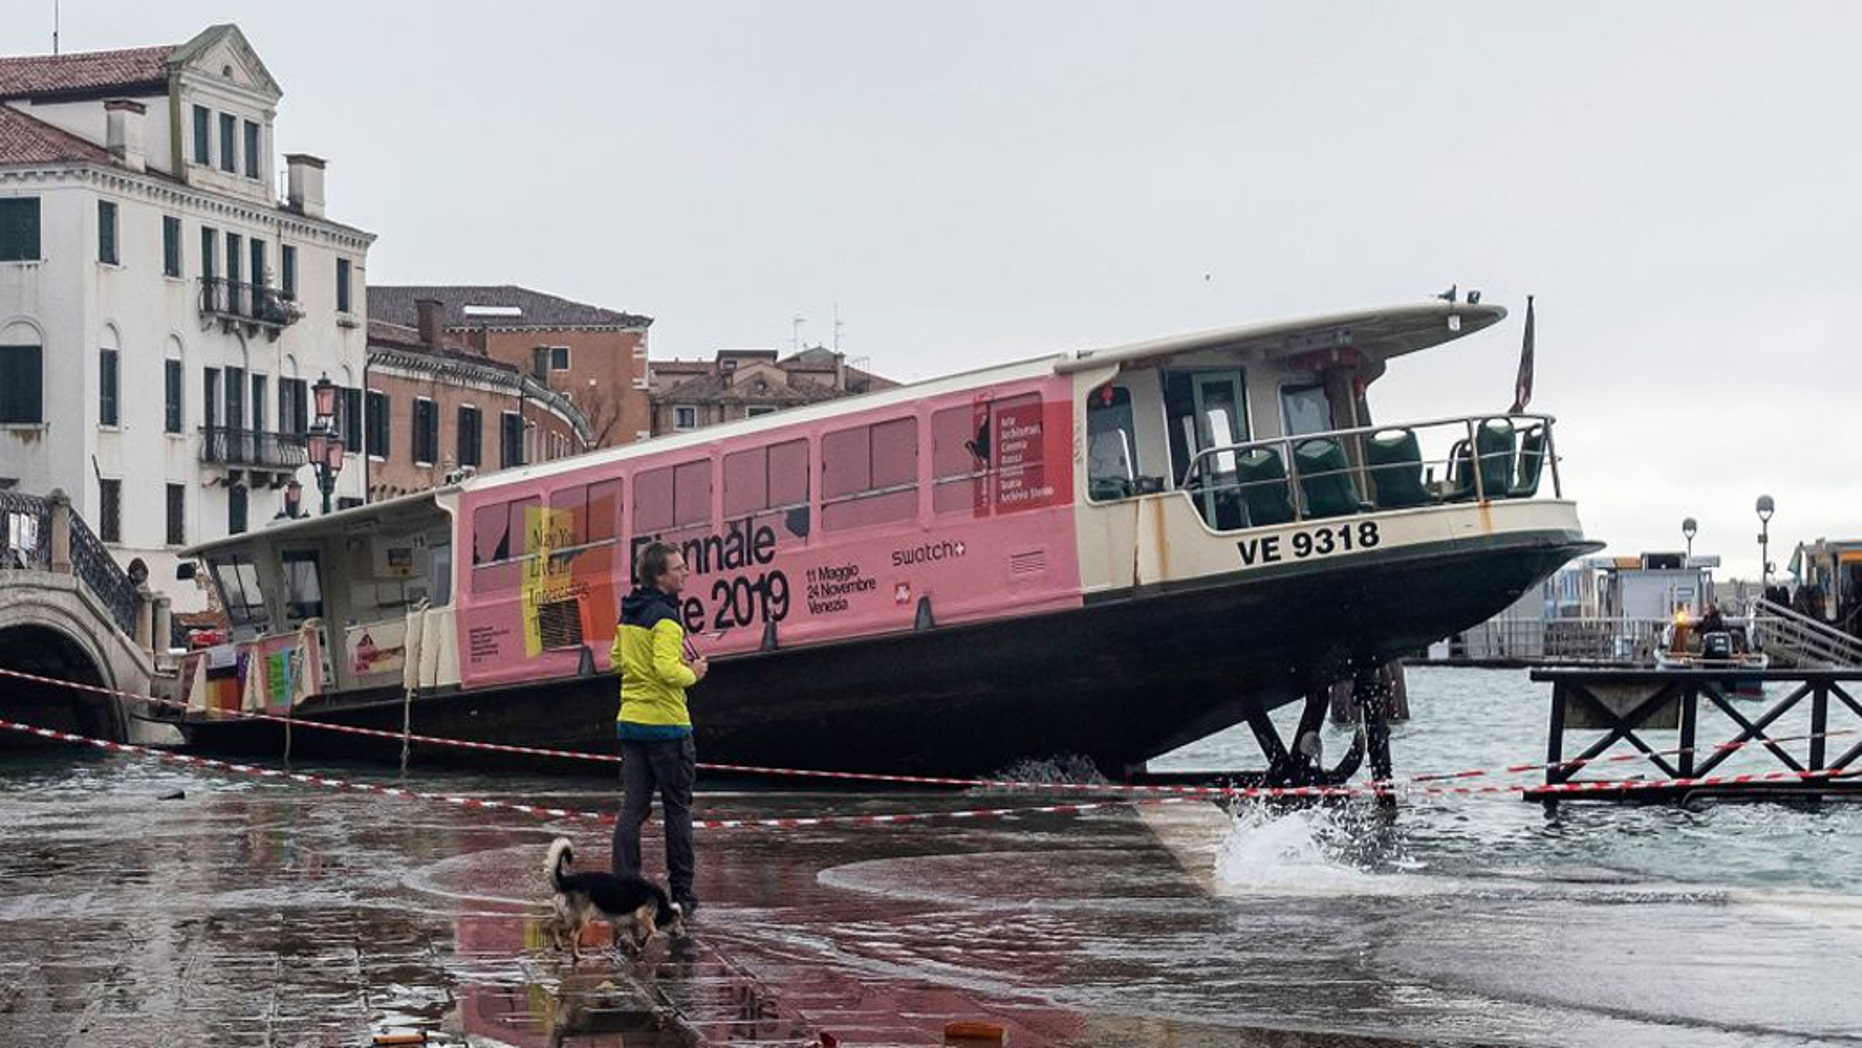 Westlake Legal Group water-taxi-venice Venice suffers worst flooding in 50 years, mayor blames climate change LiveScience fox-news/science/planet-earth/climate fnc/science fnc e00703f7-3ce4-5cf0-b530-7f56b9754487 Brandon Specktor article